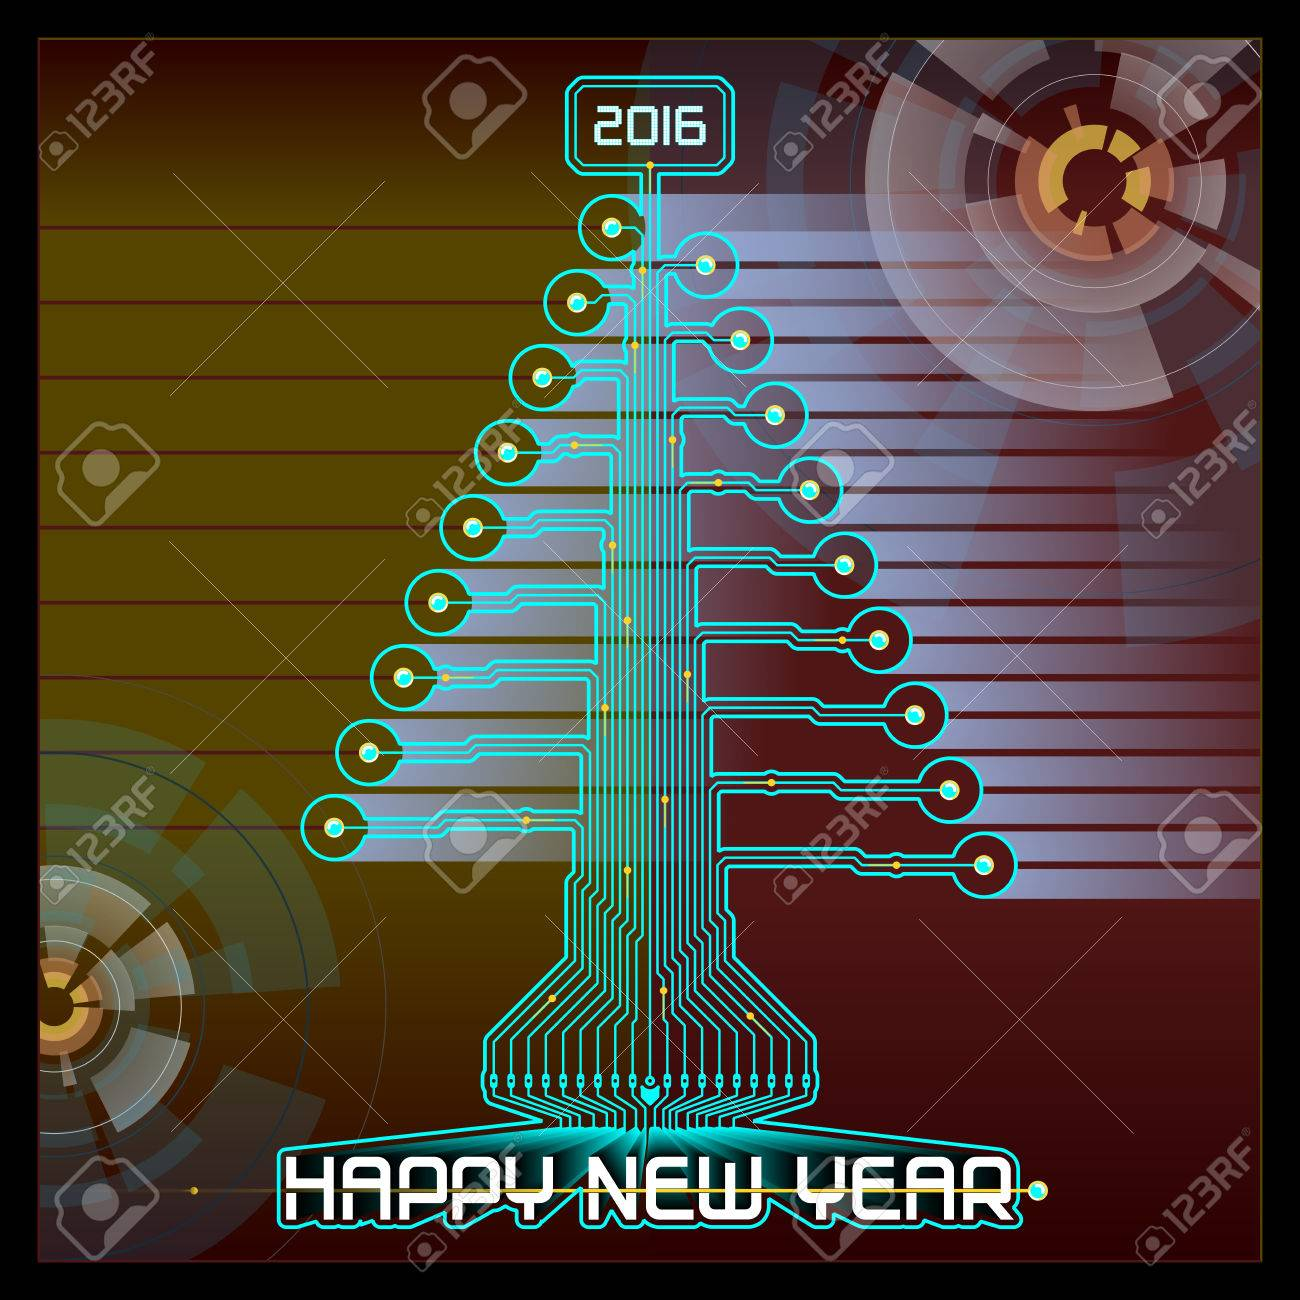 Techno Design Of A Christmas Tree With New Year Greetings Royalty